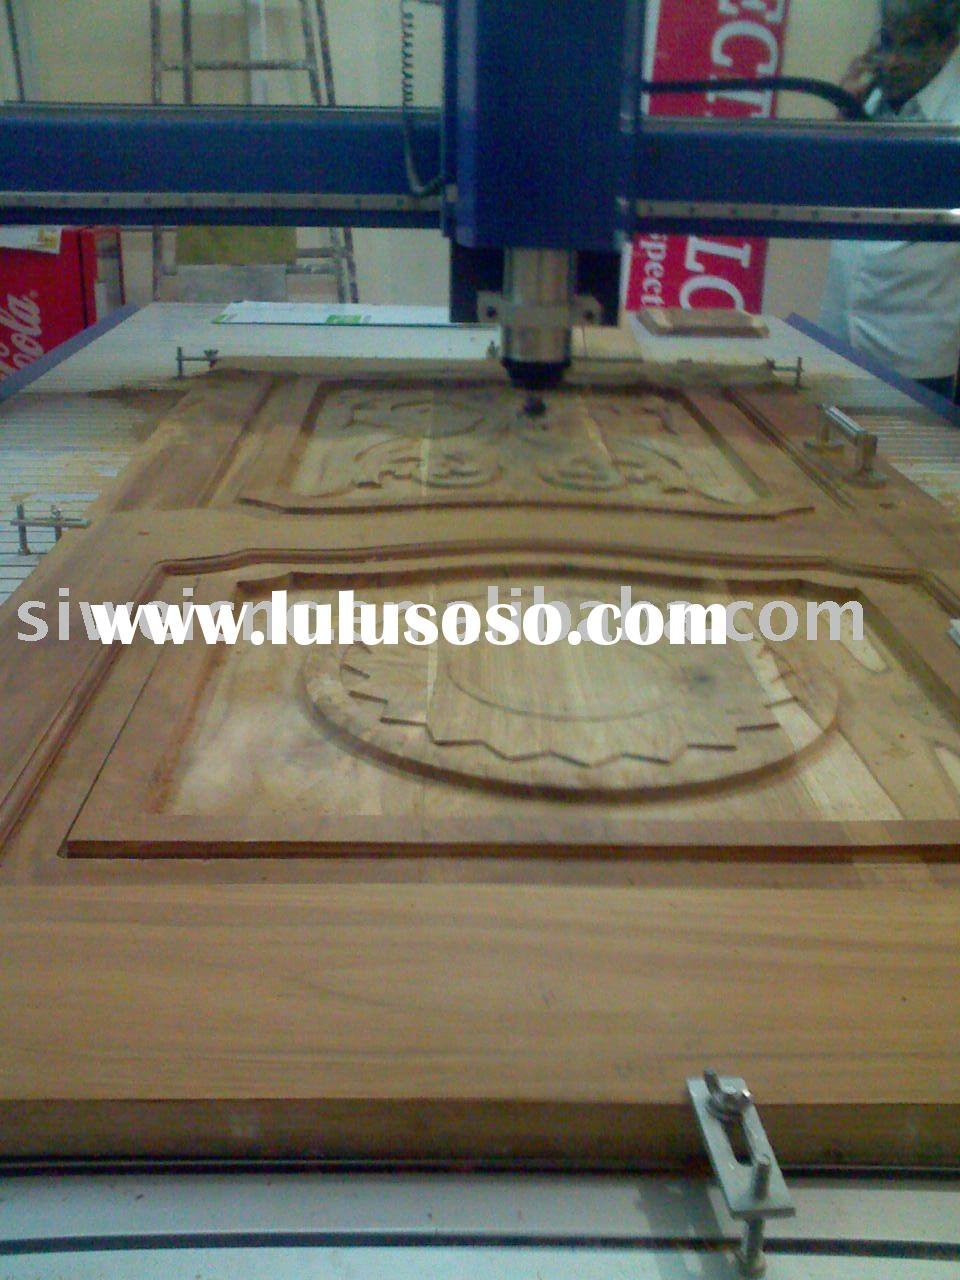 Woodworking computerized wood carving machines PDF Free Download